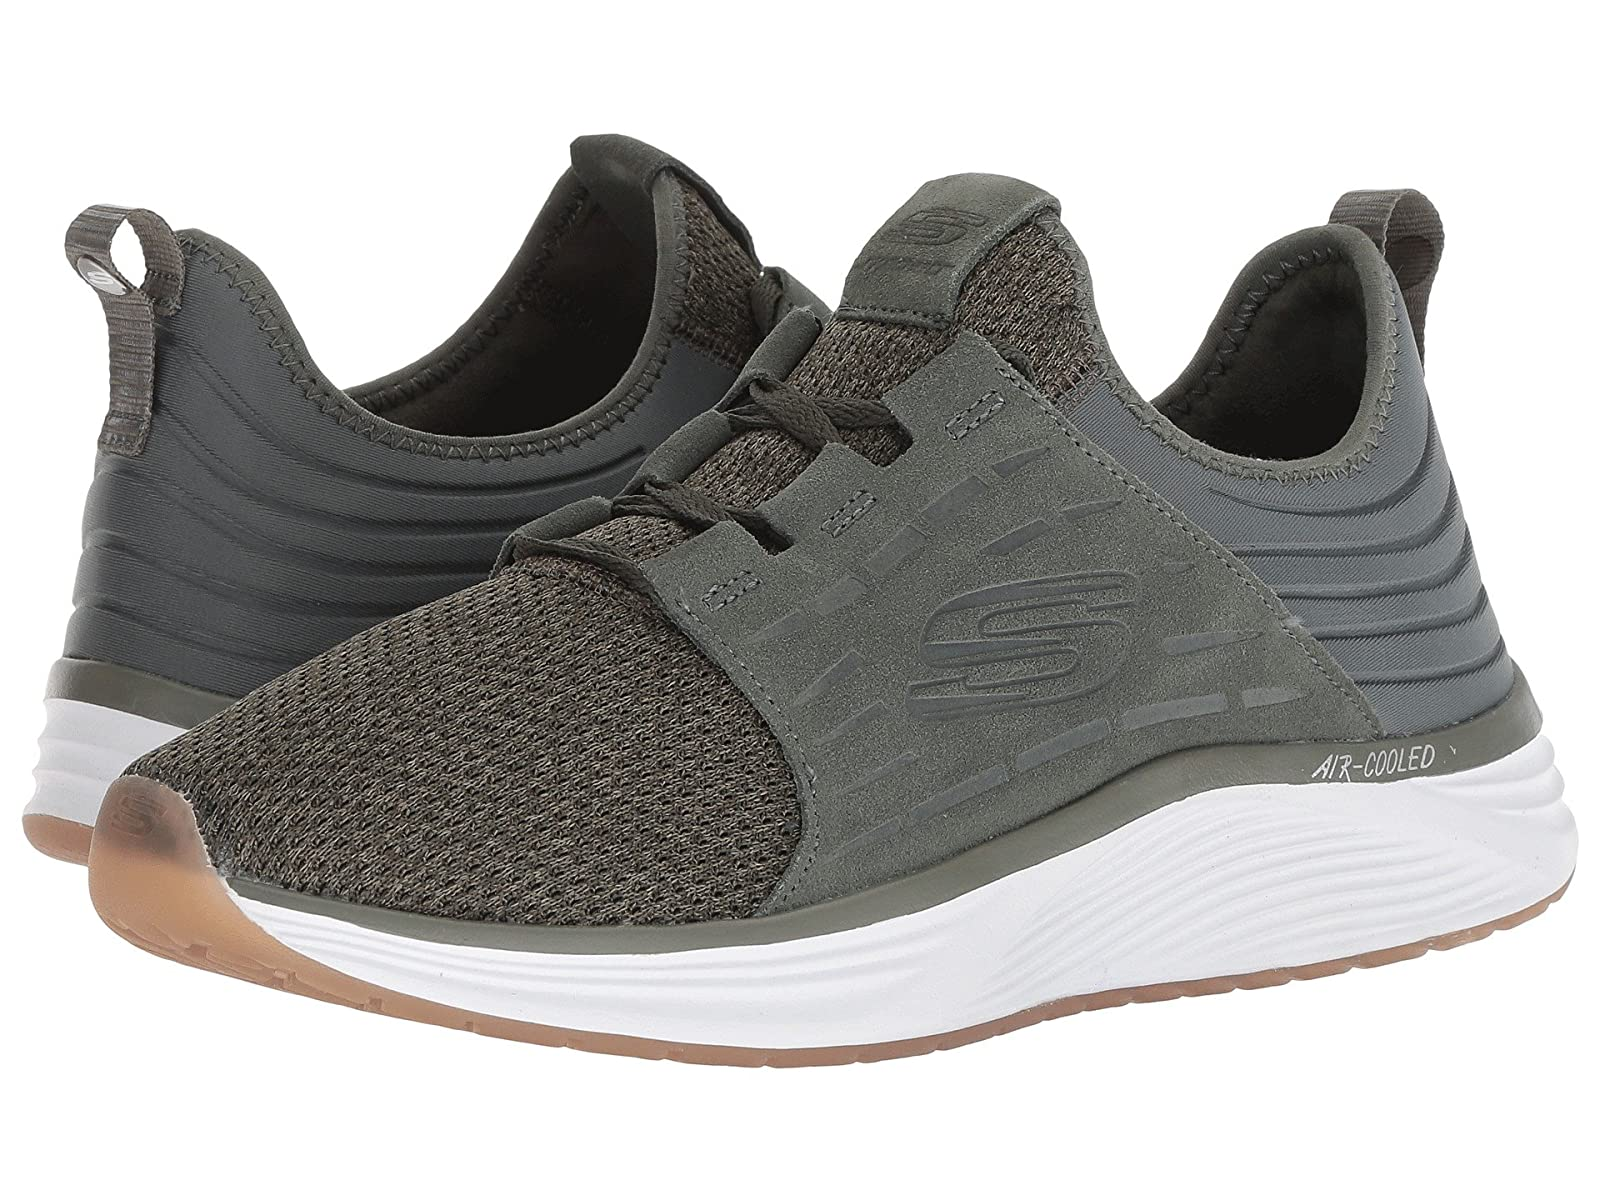 SKECHERS SkylineAtmospheric grades have affordable shoes